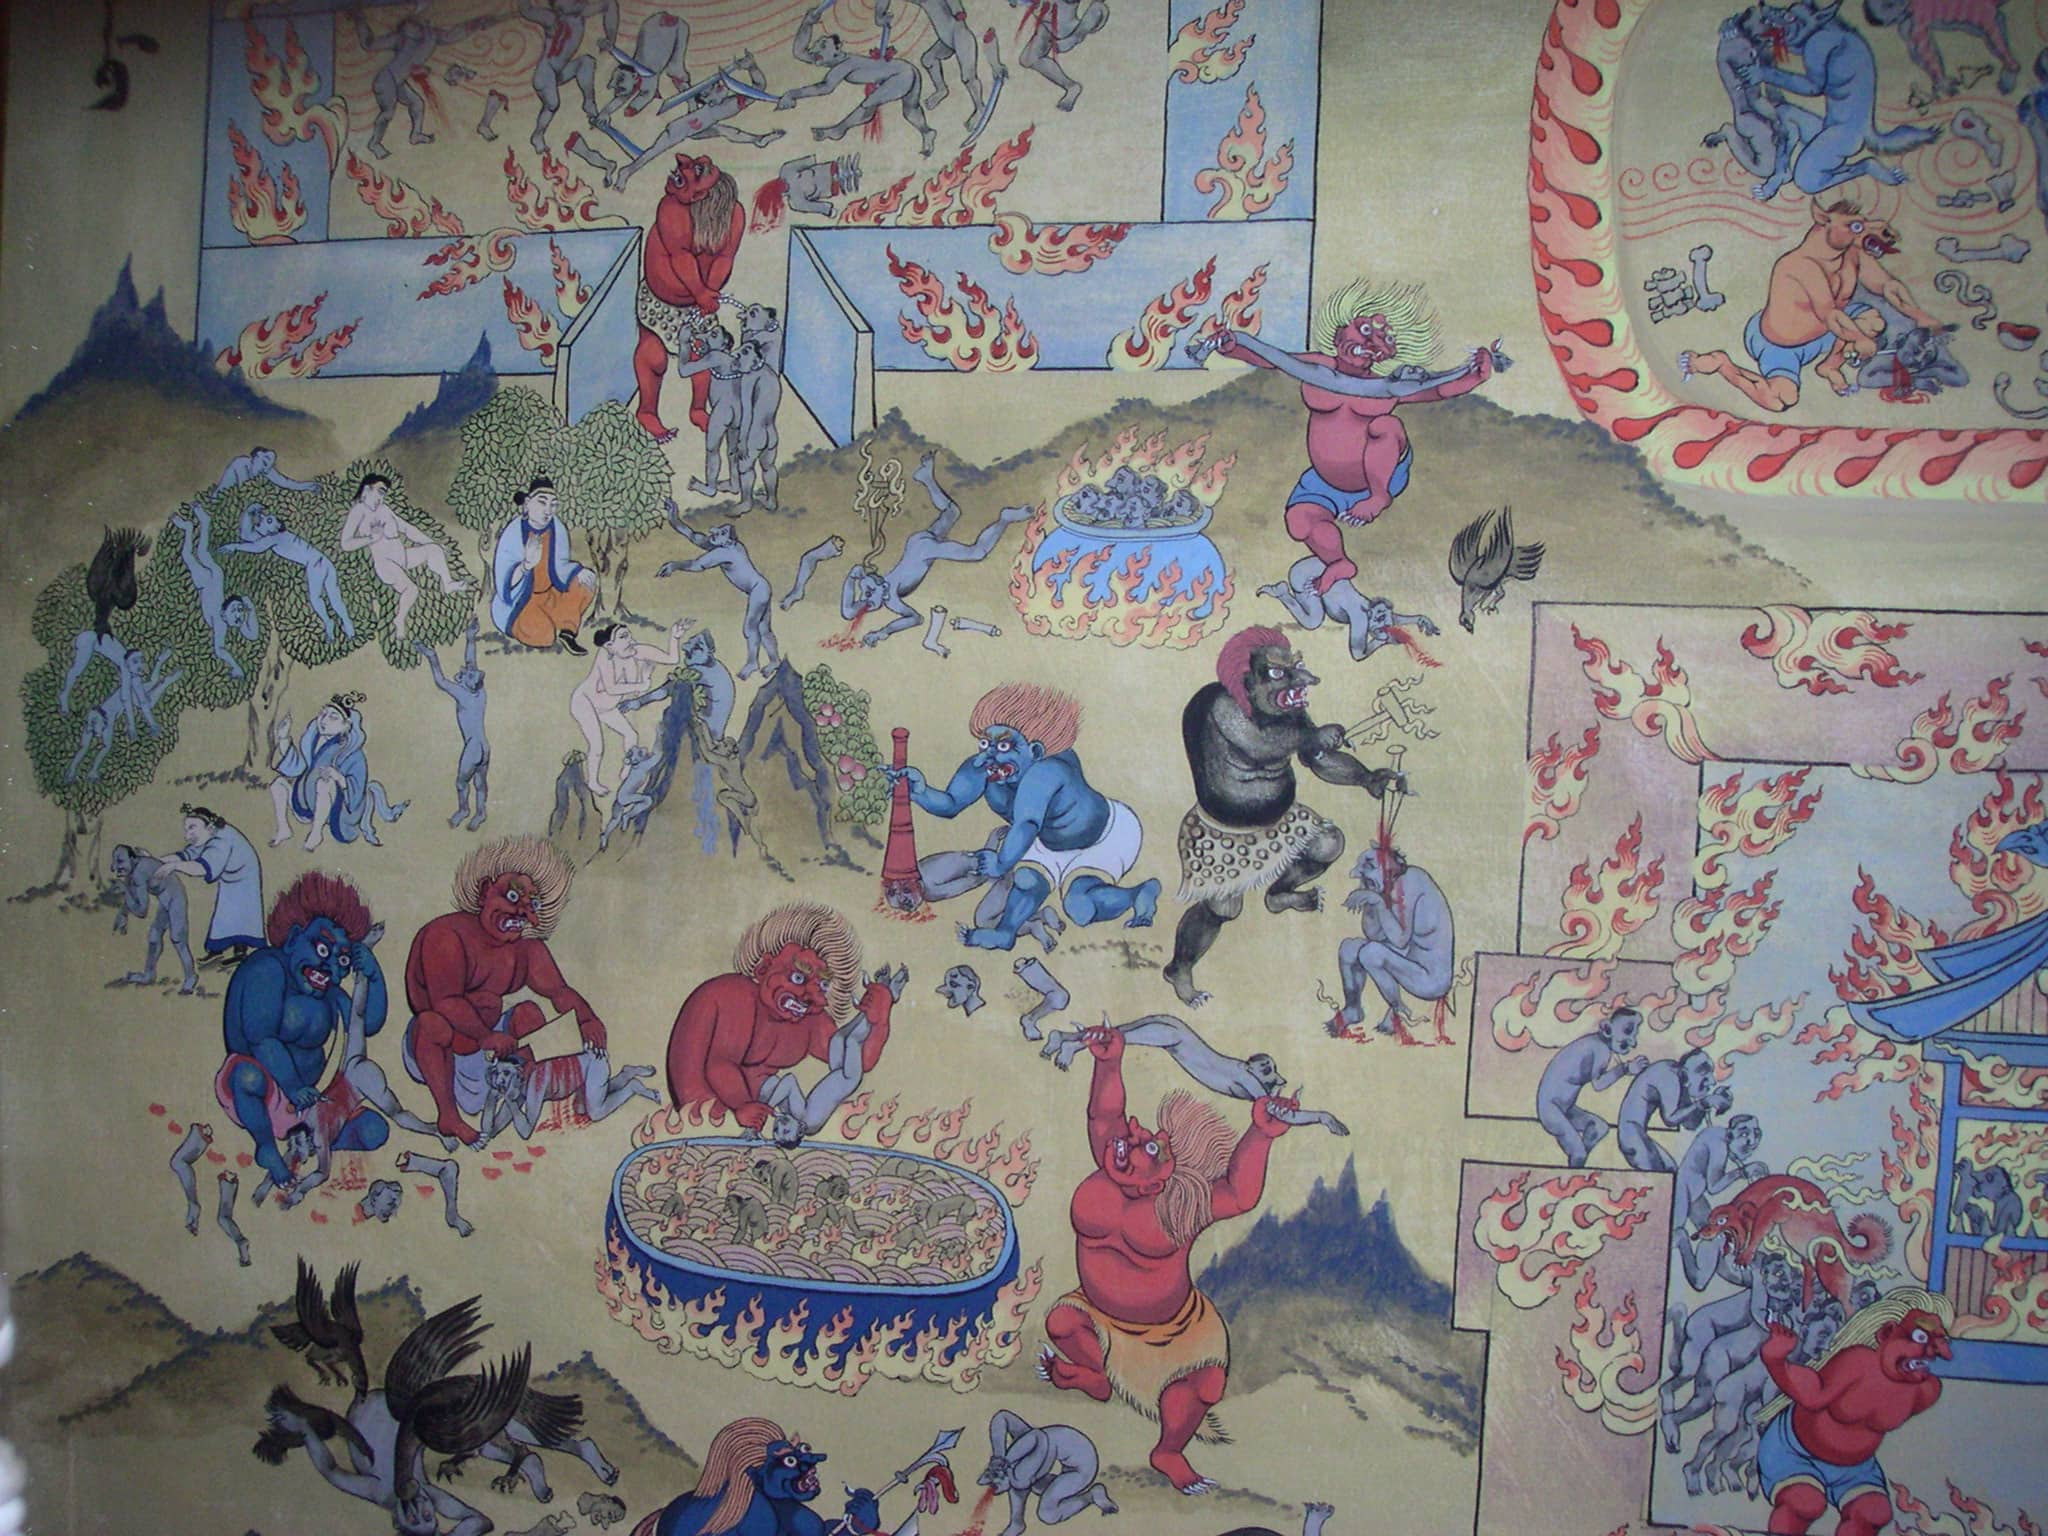 A Buddhist image of hell in the Gandan Monastery (all photos by Massimo Introvigne, except photo 6)